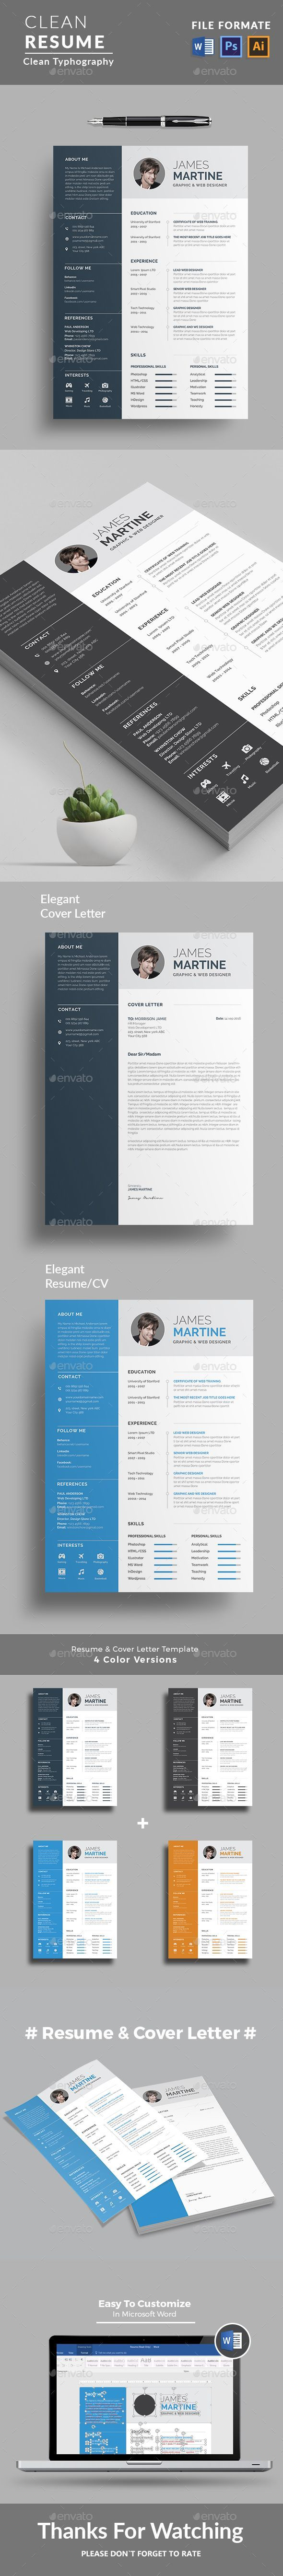 Resume 19 best Resumes images on Pinterest